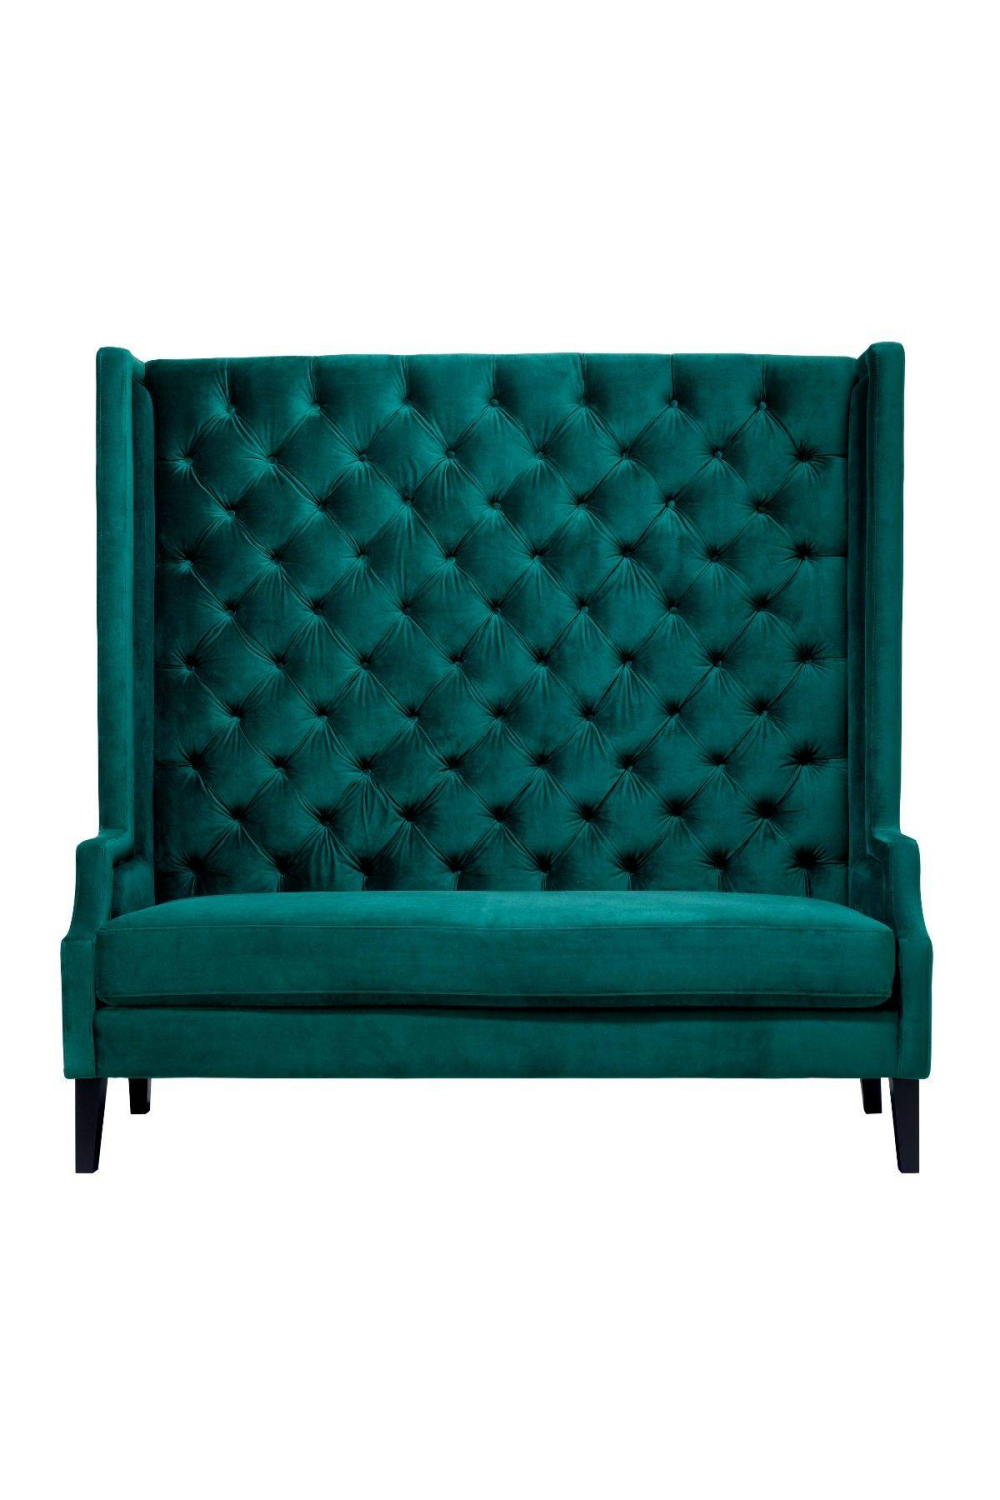 High Tufted Green Sofa | Eichholtz Spectator | Woodfurniture.com